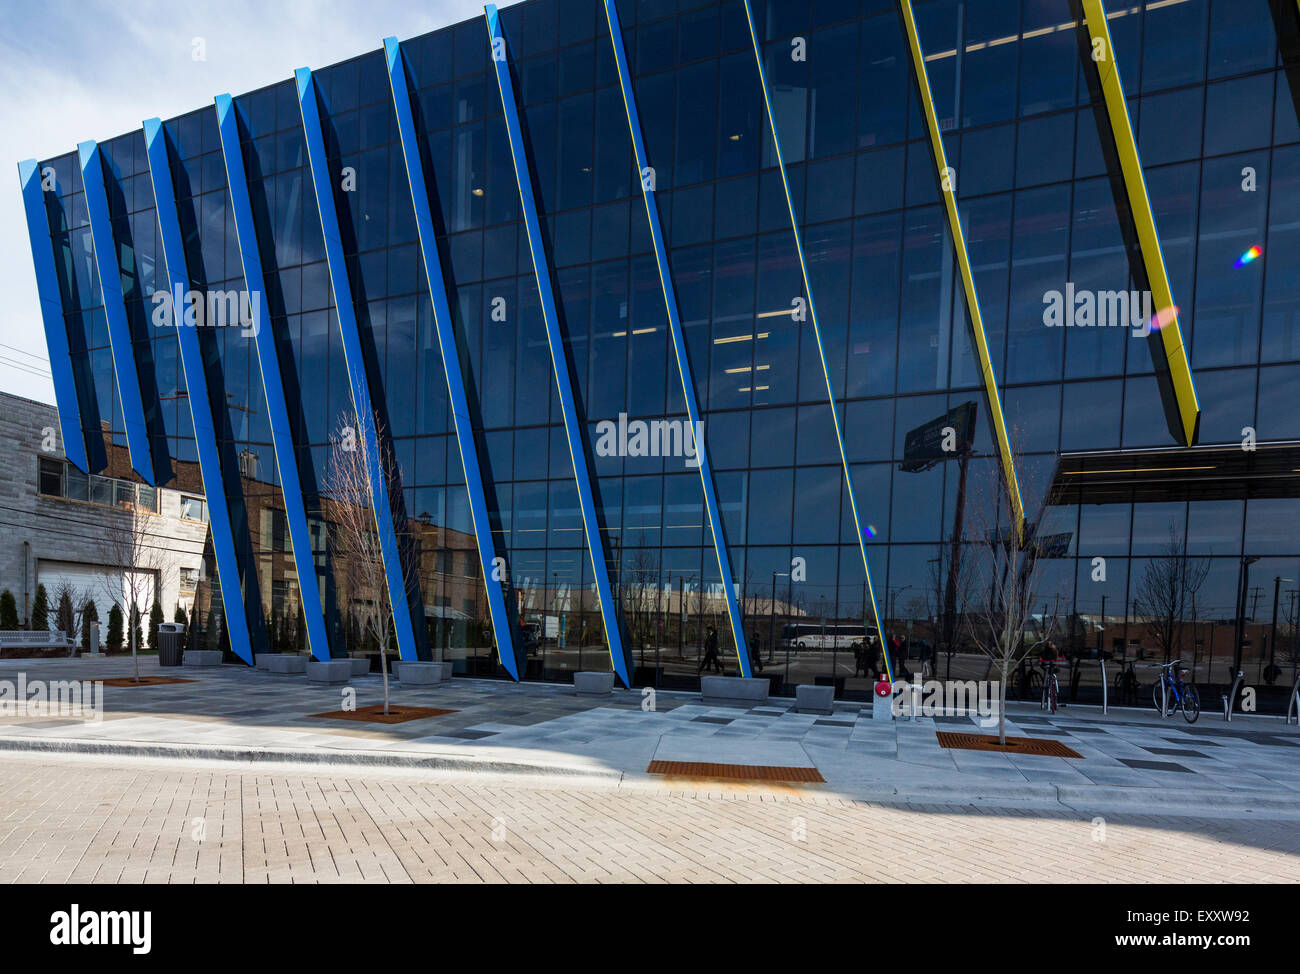 exterior, El Centro urban campus,  Northeastern Illinois University, Avondale, Chicago, Illinois, USA Stock Photo